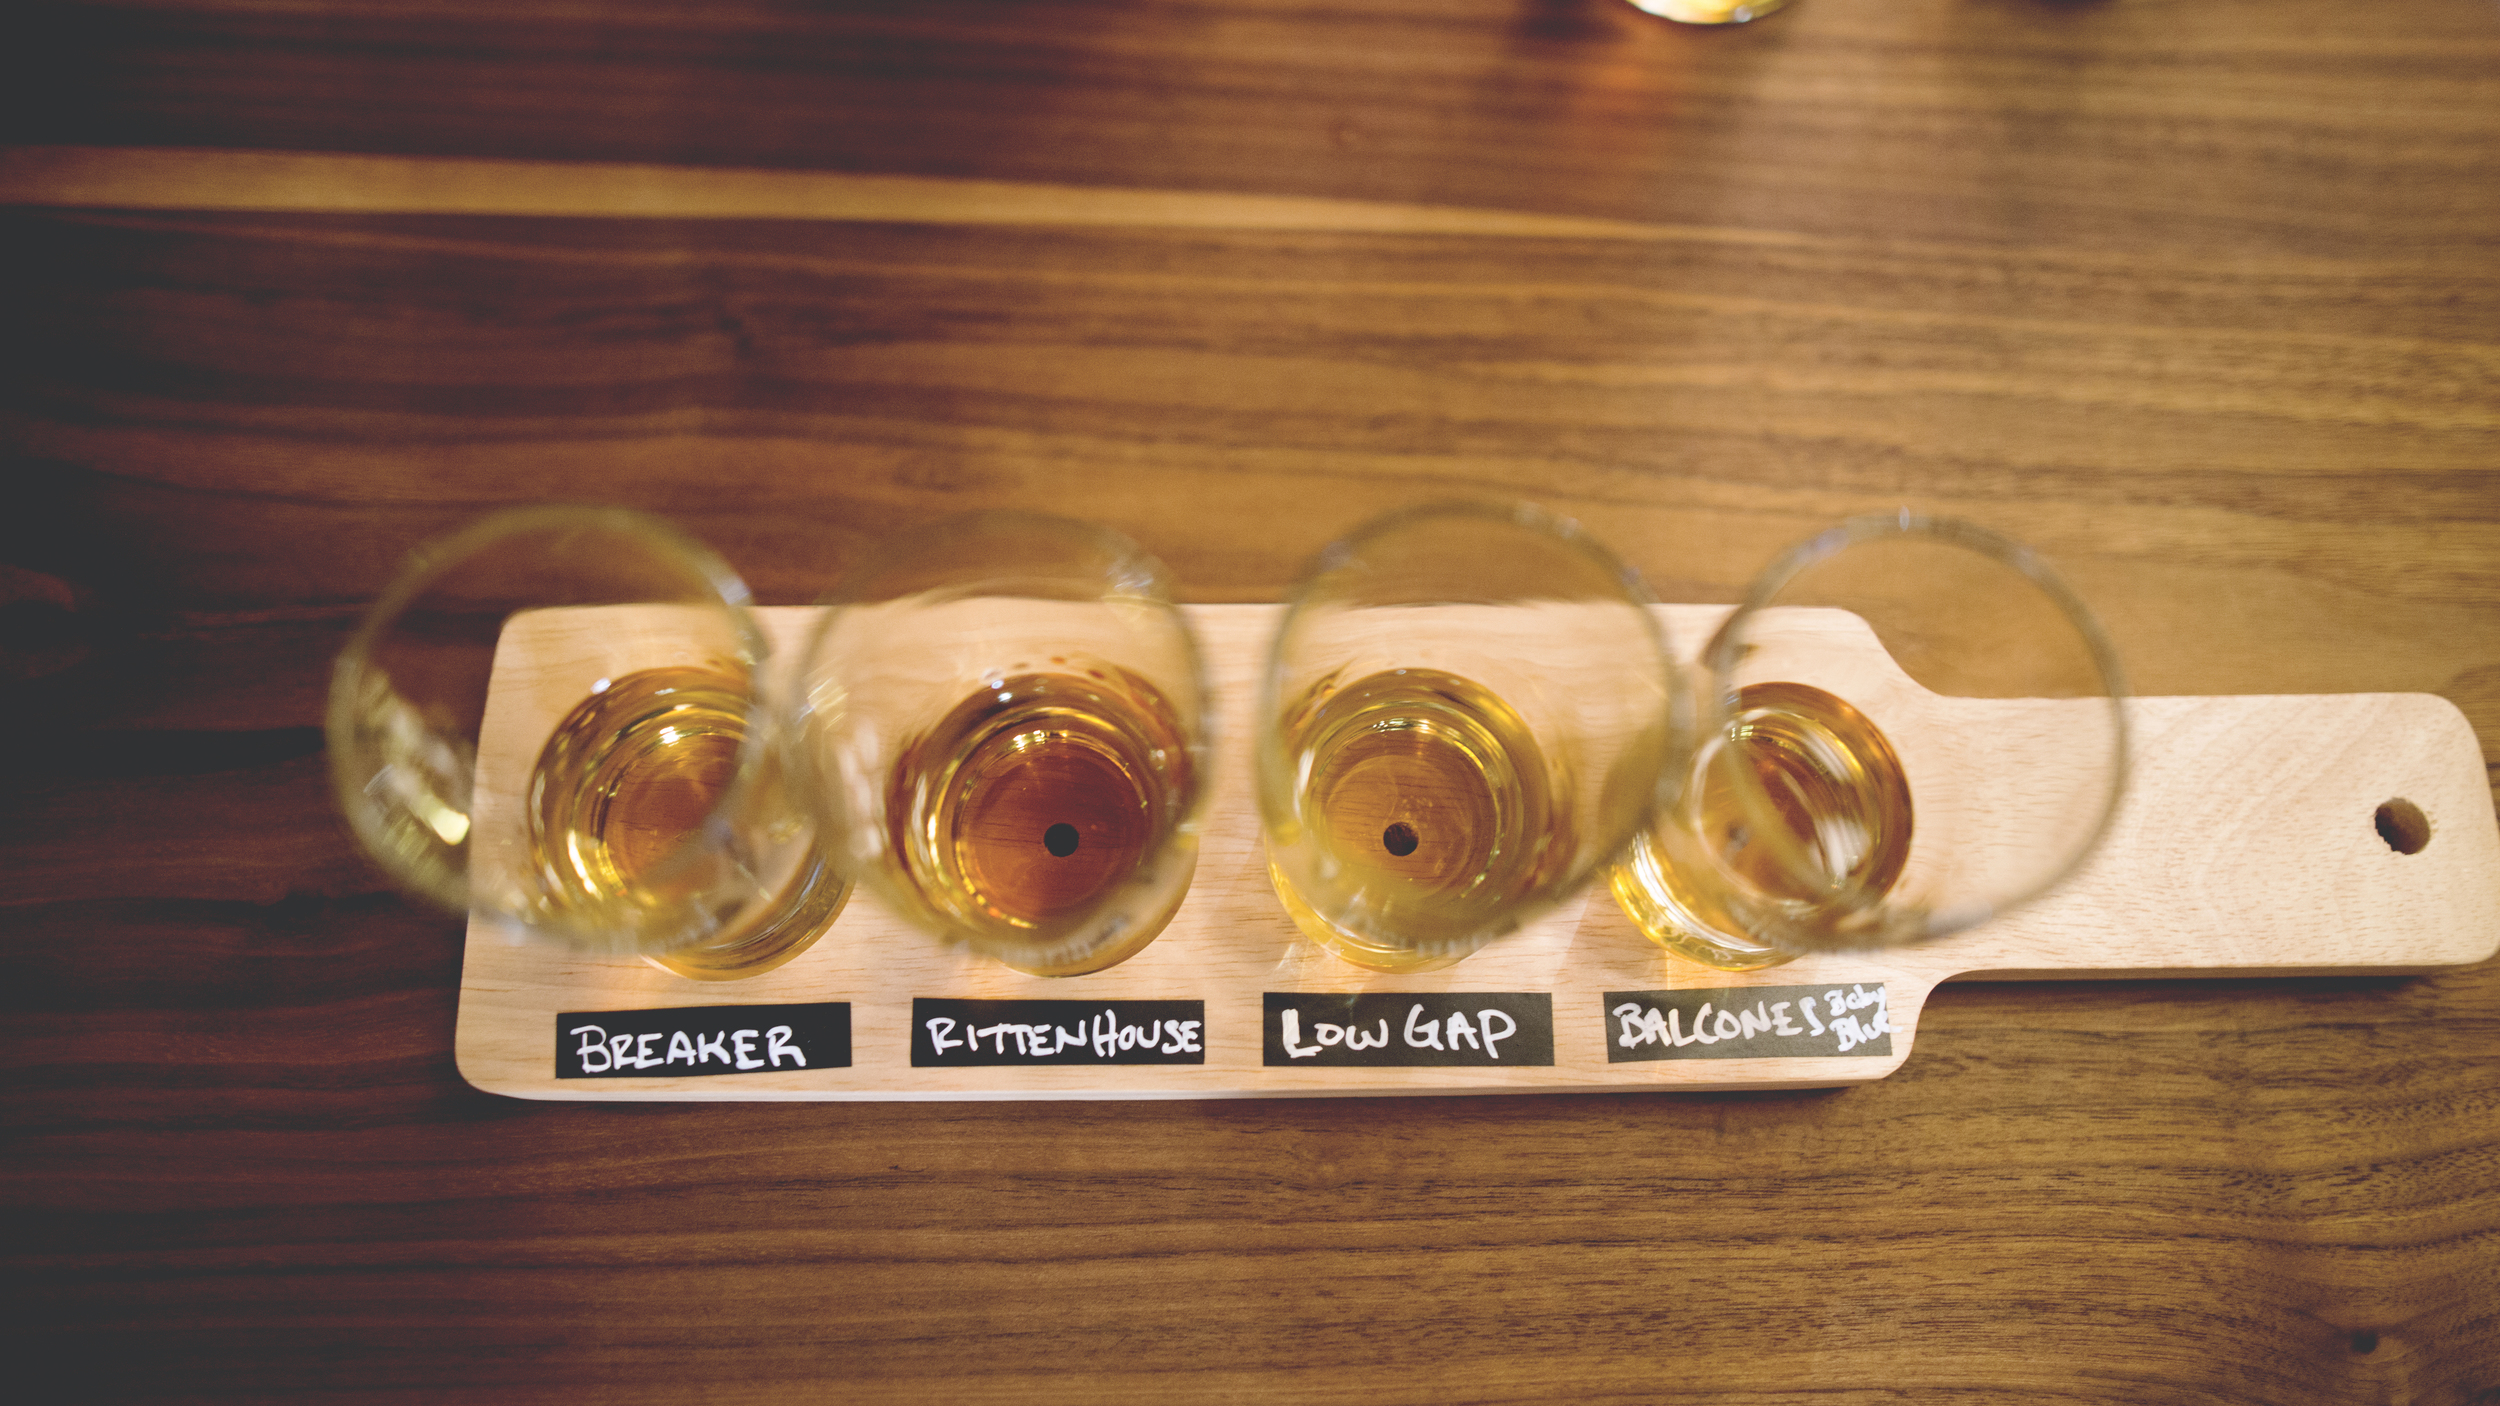 Eureka!'s Whiskey Flight